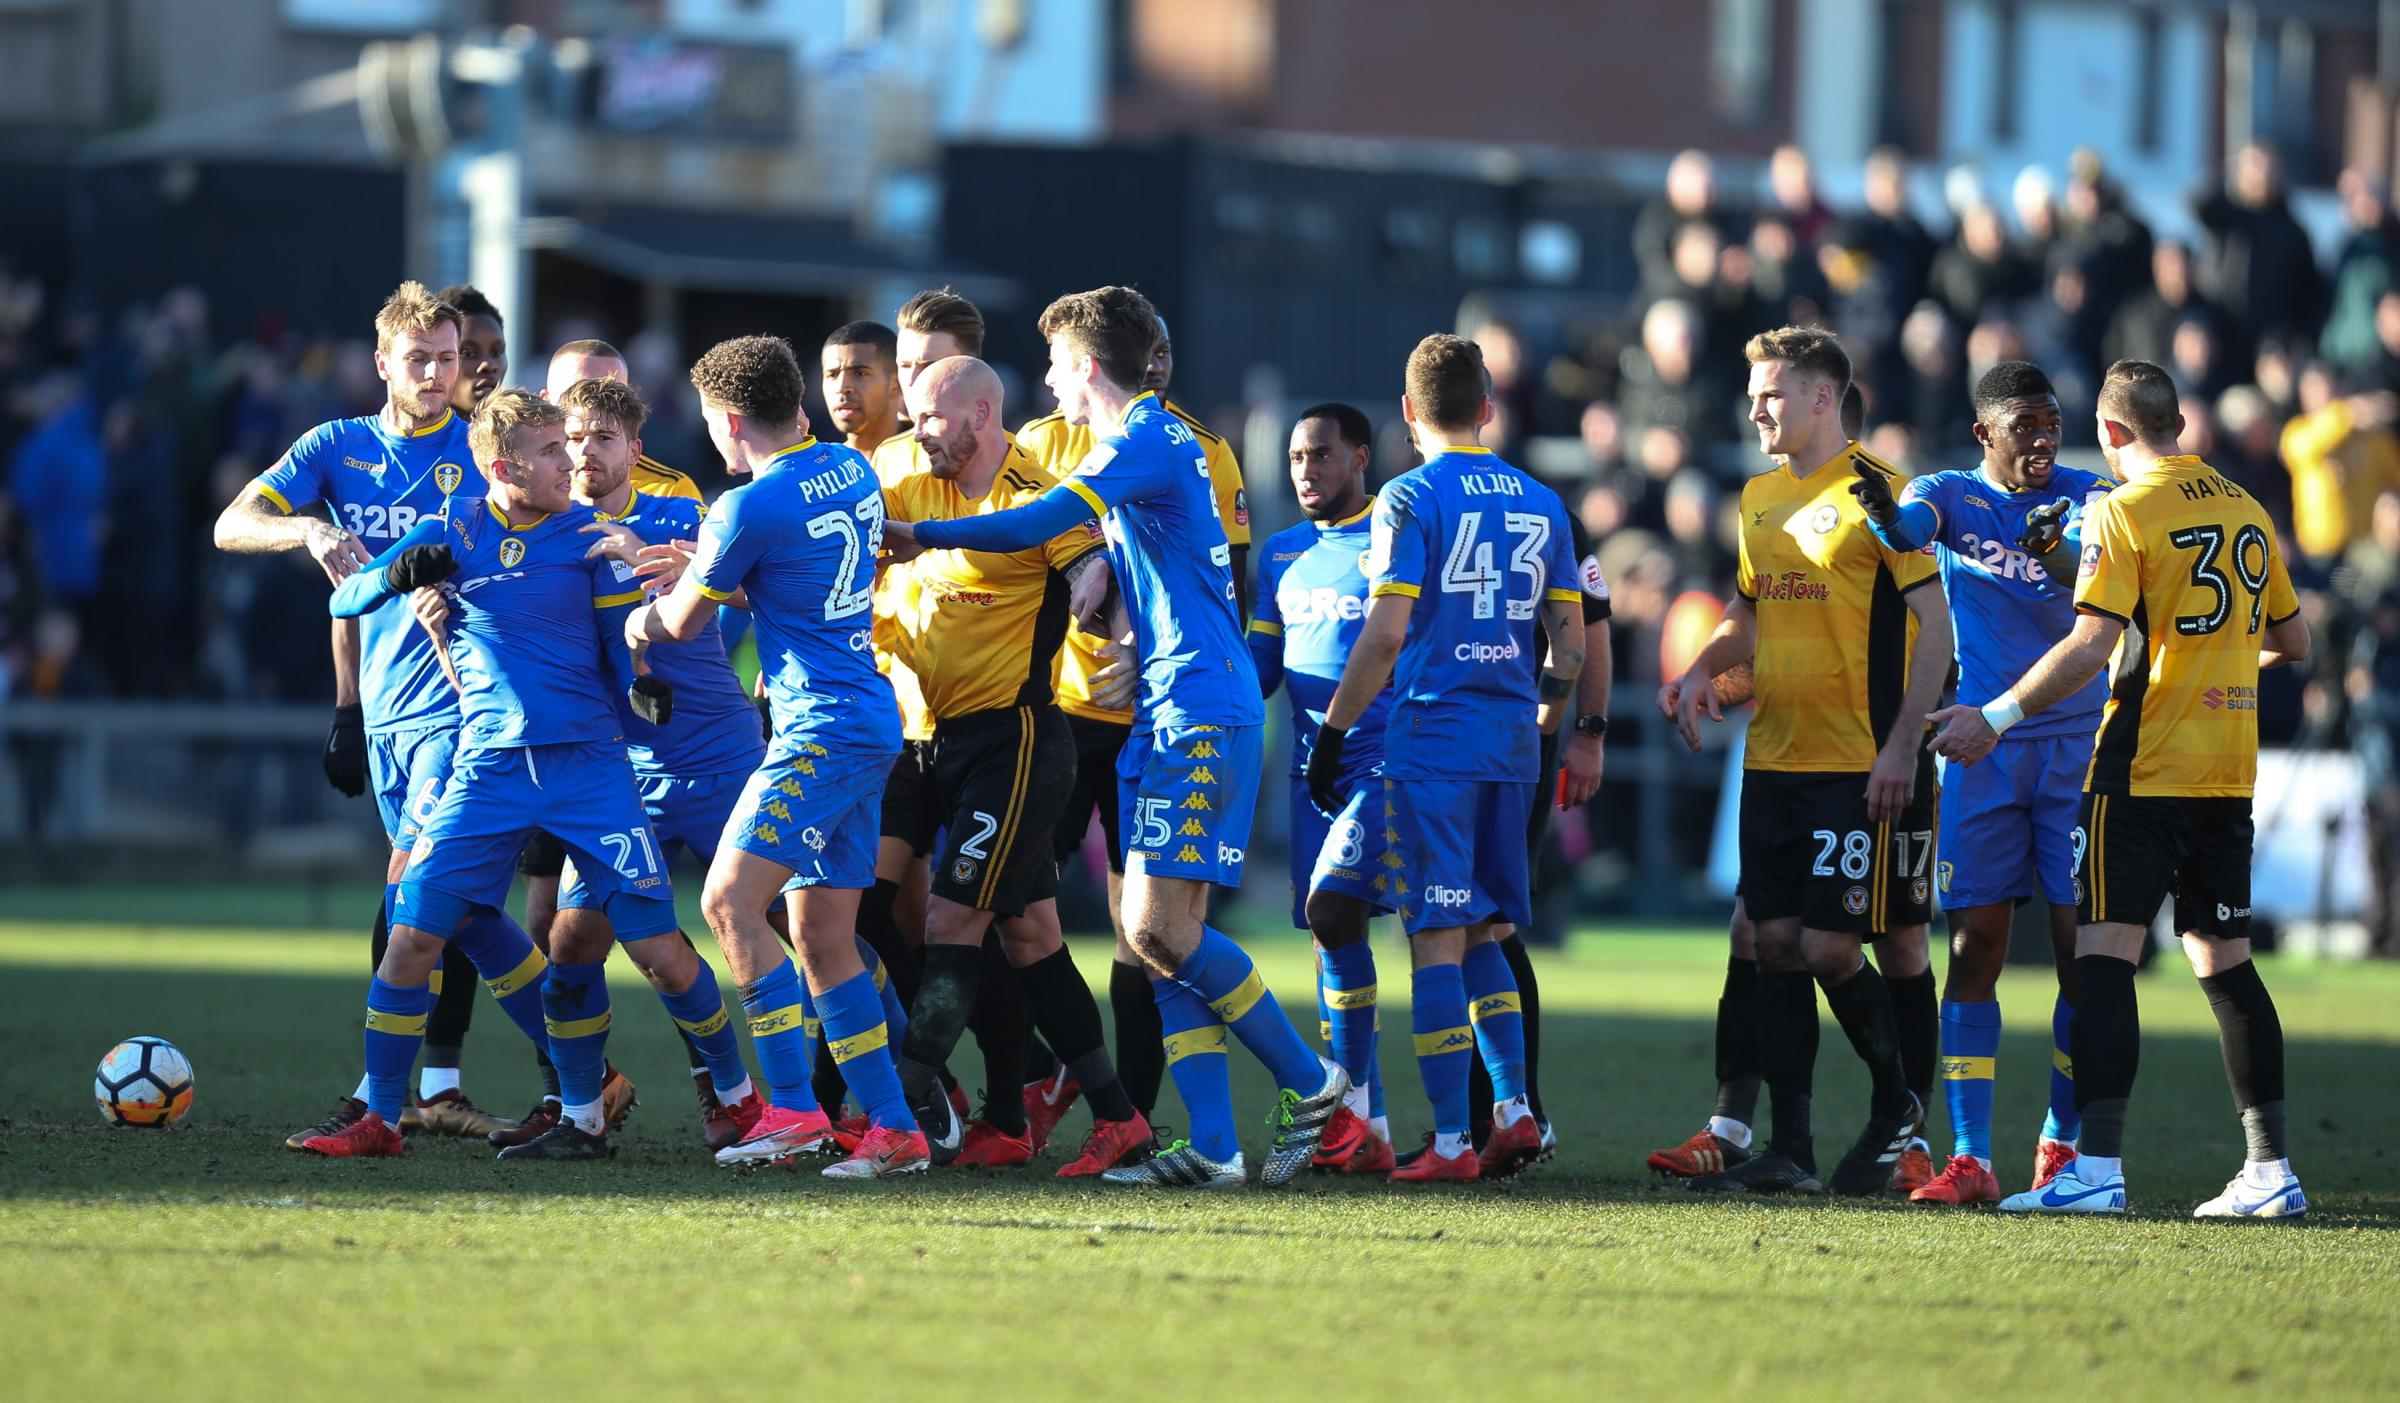 FLASHPOINT: The red card shown to Leeds United's Samuel Saiz, second from left, prompted a confrontation with Newport County players. Picture: Huw Evans Agency